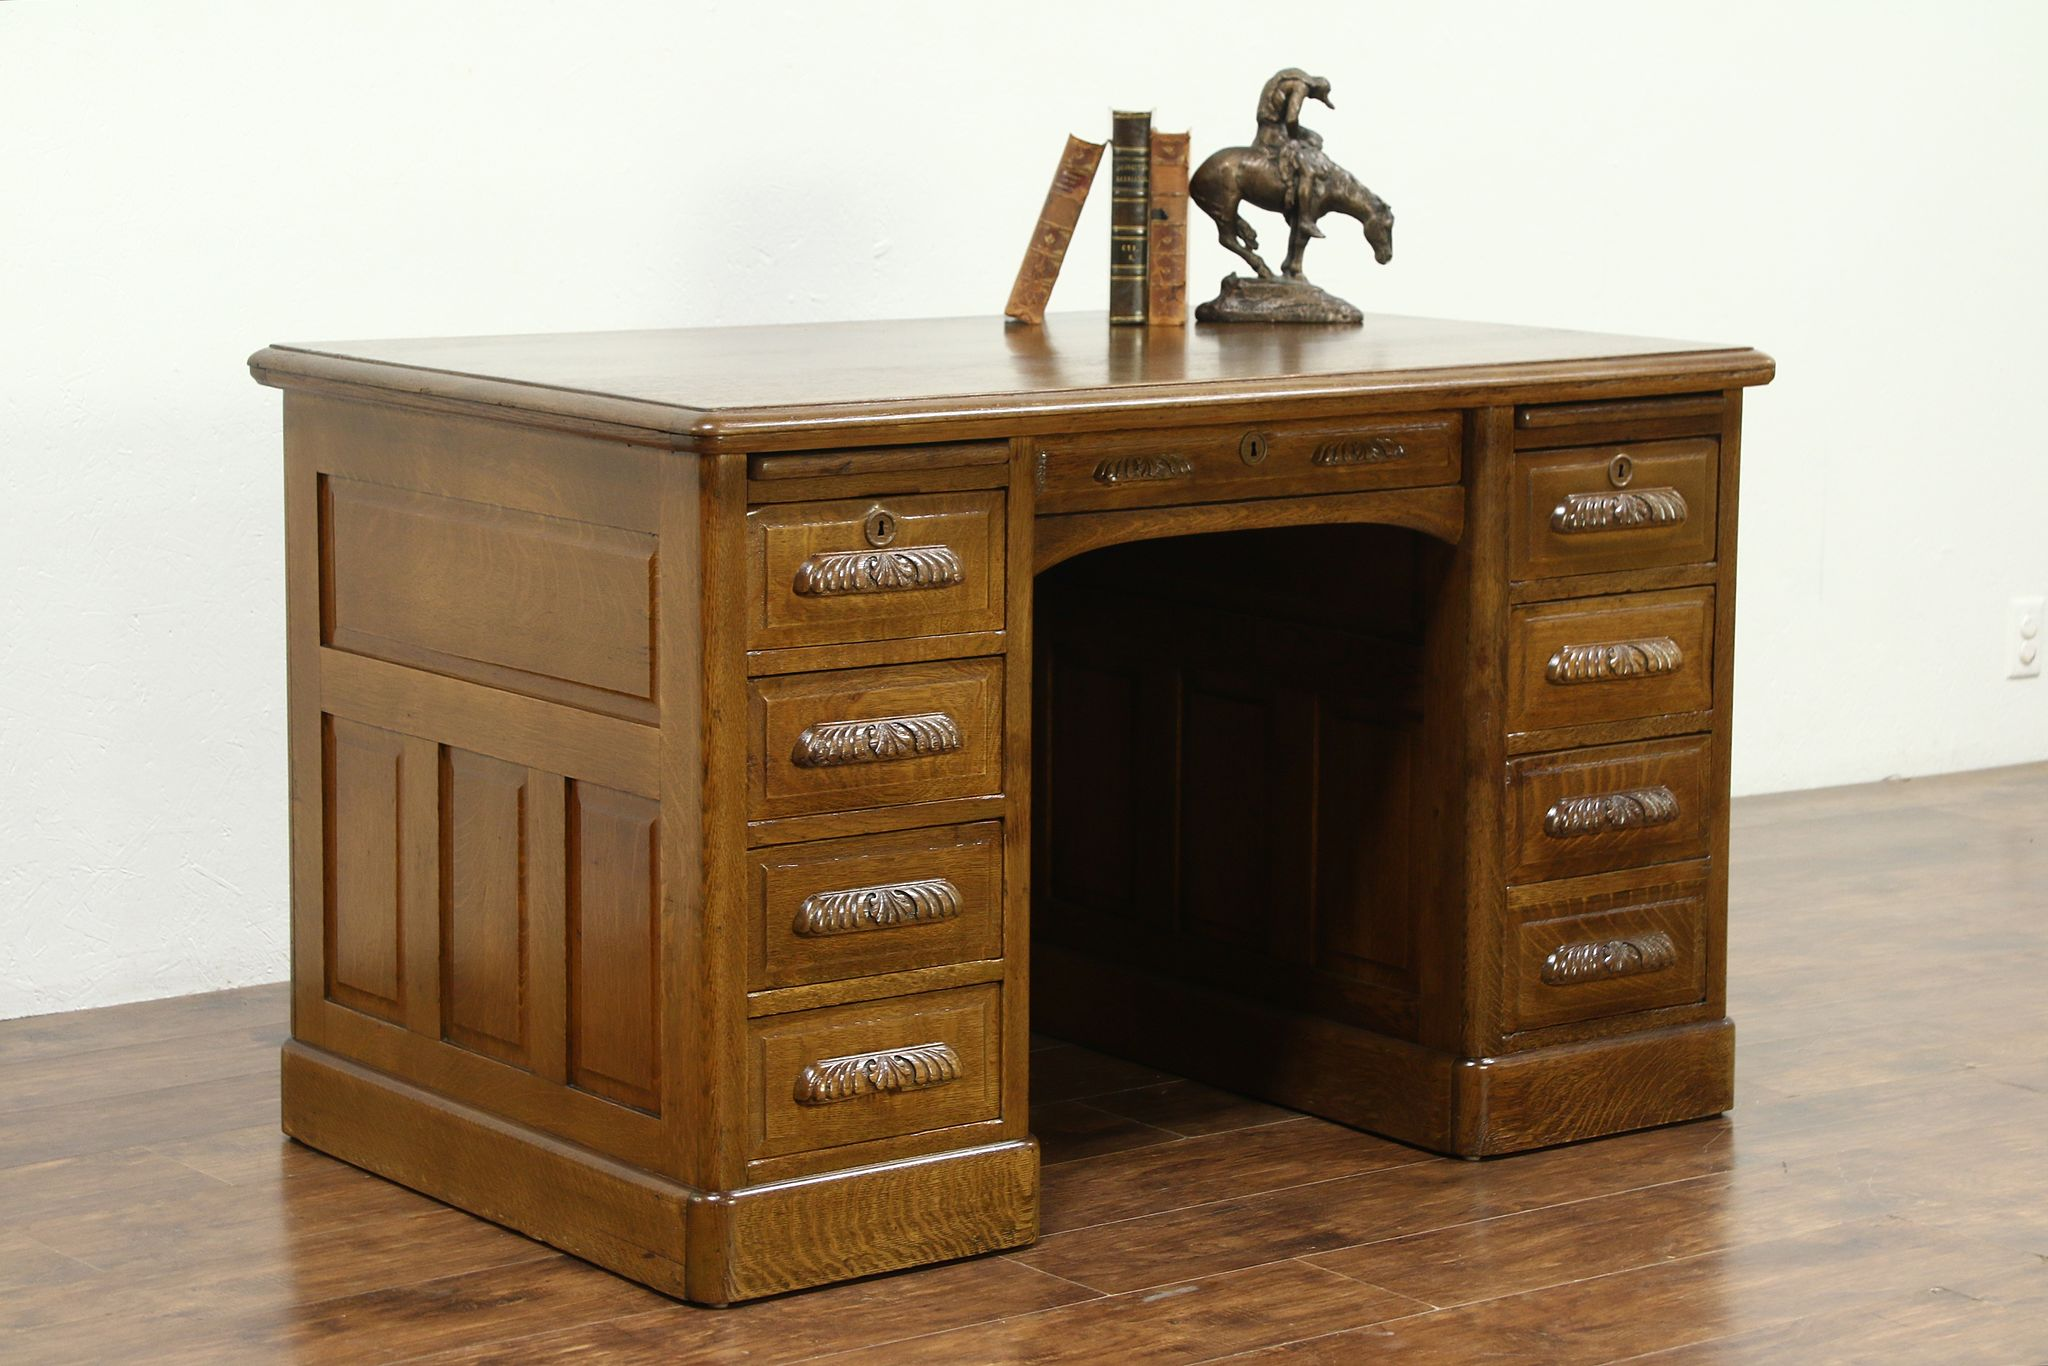 sold - oak raised panel 1900 antique library or office desk, carved